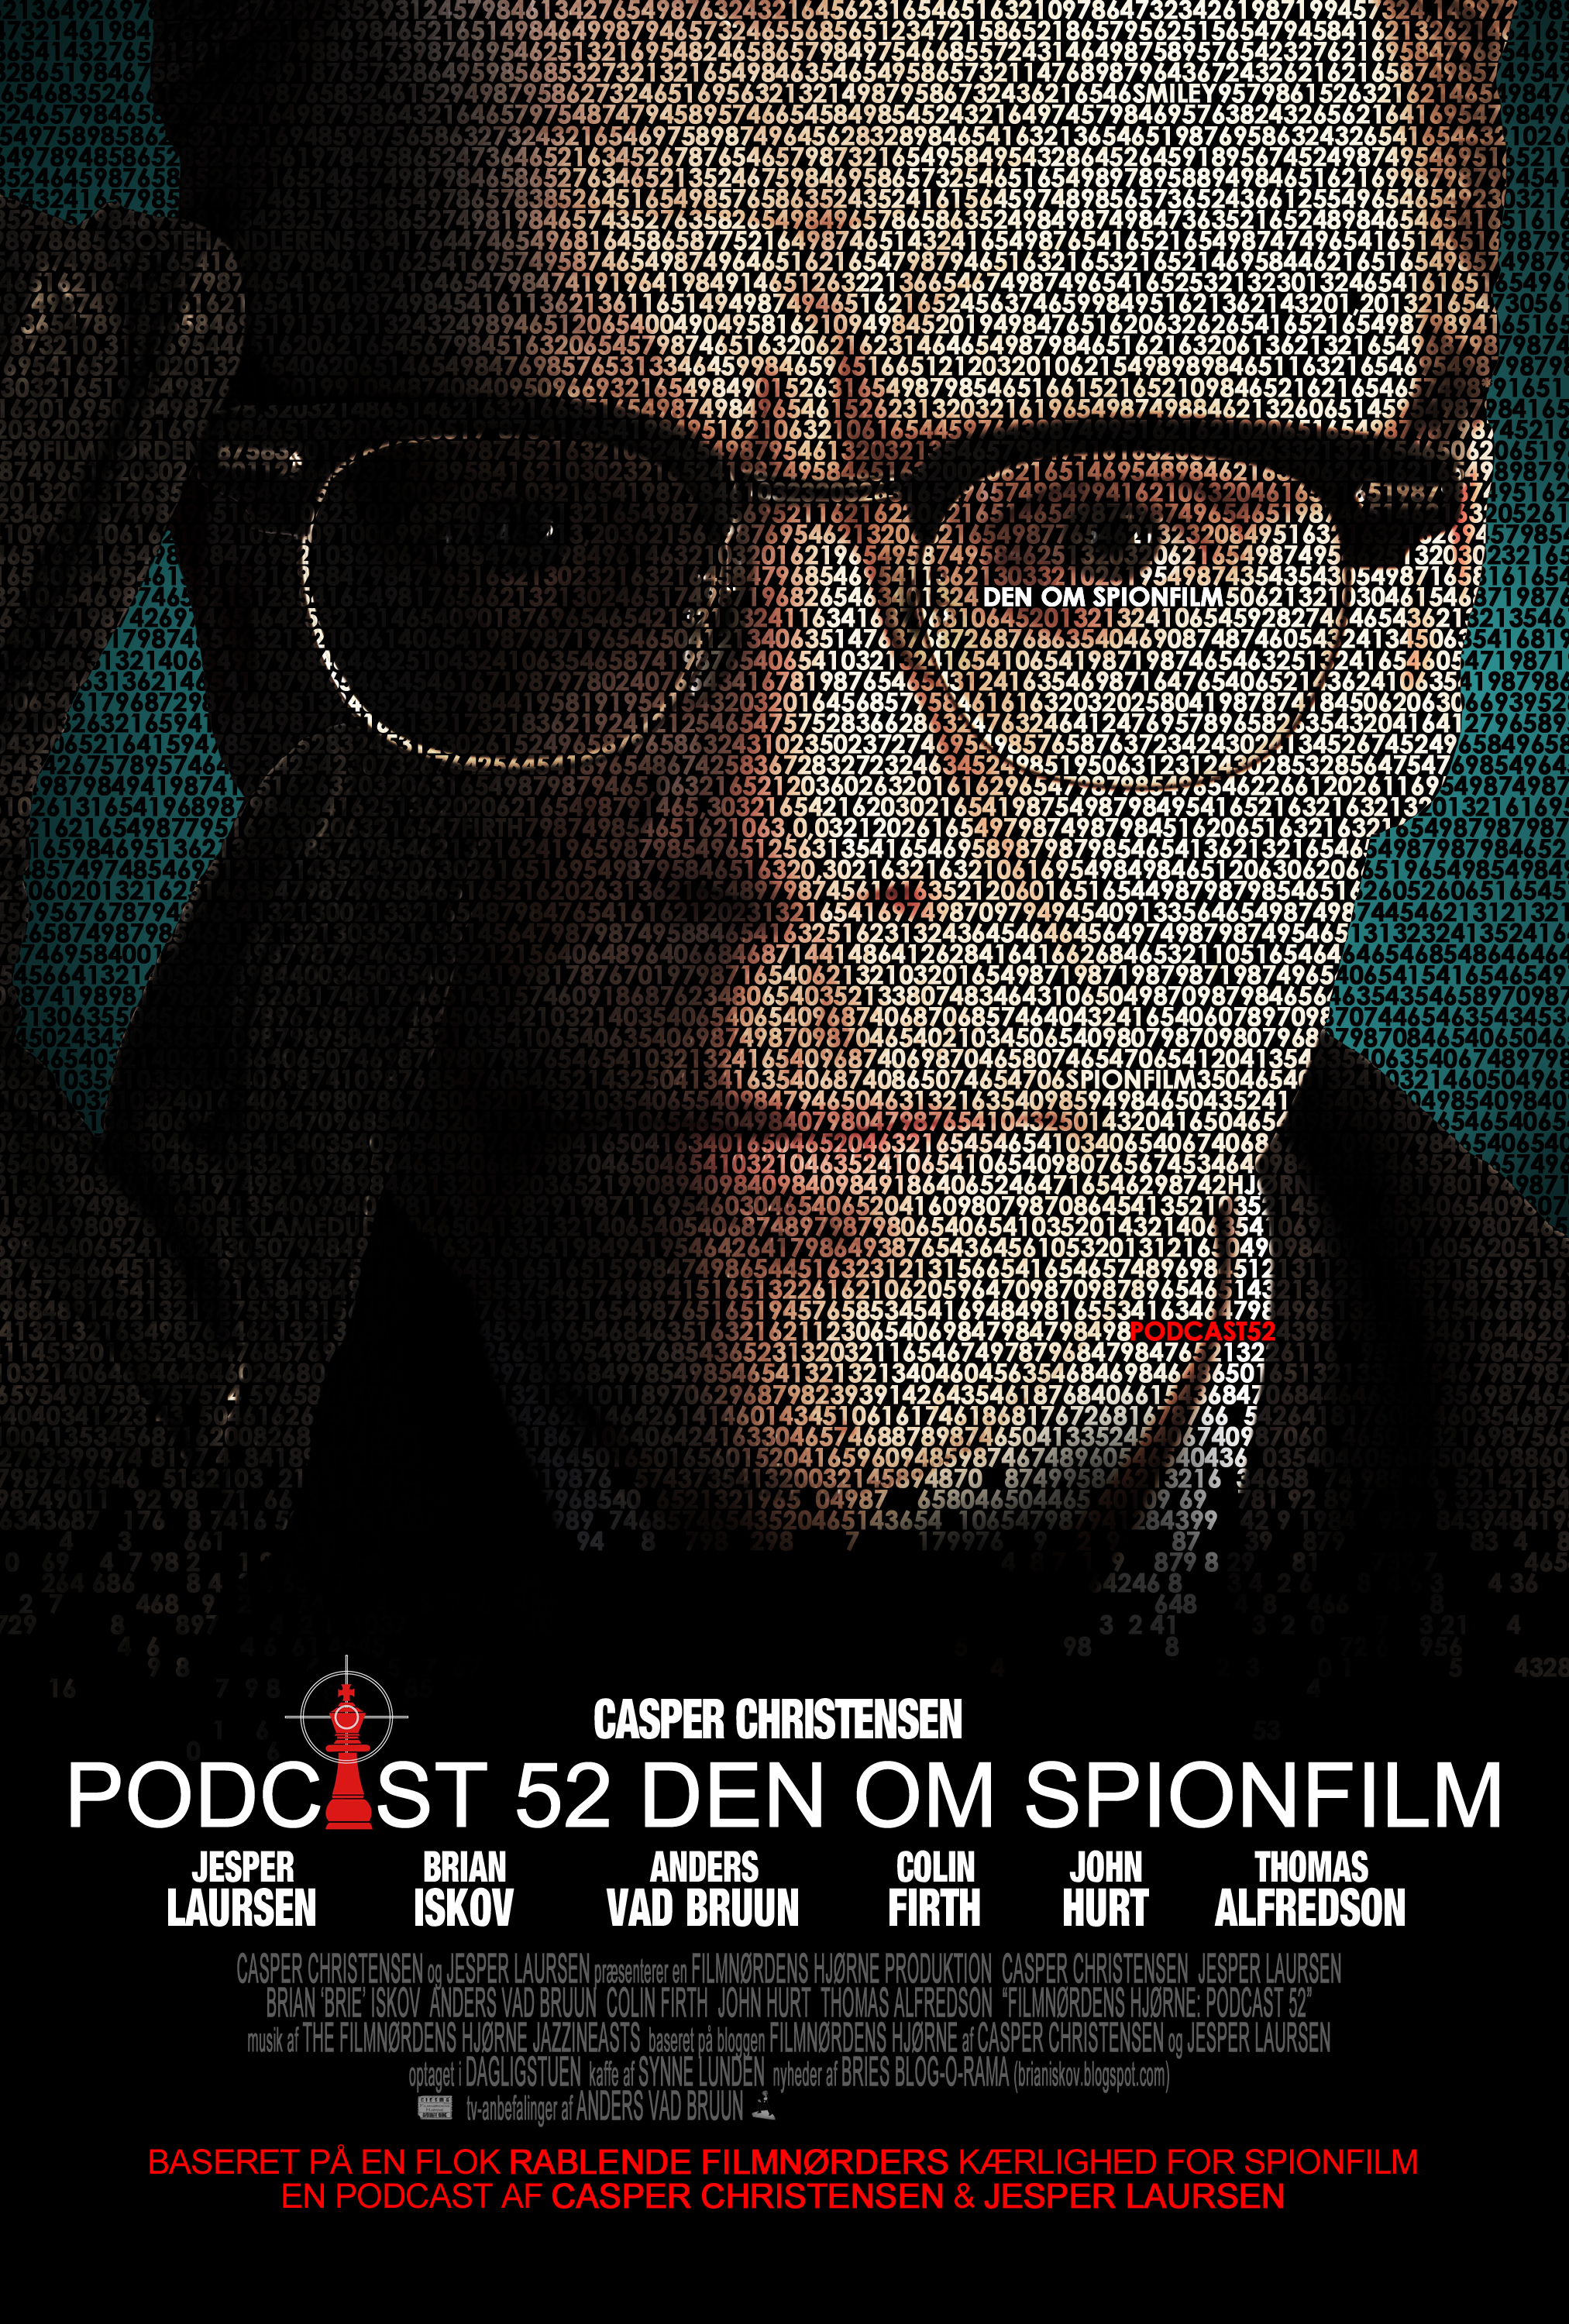 Poster for podcast 52 Casper